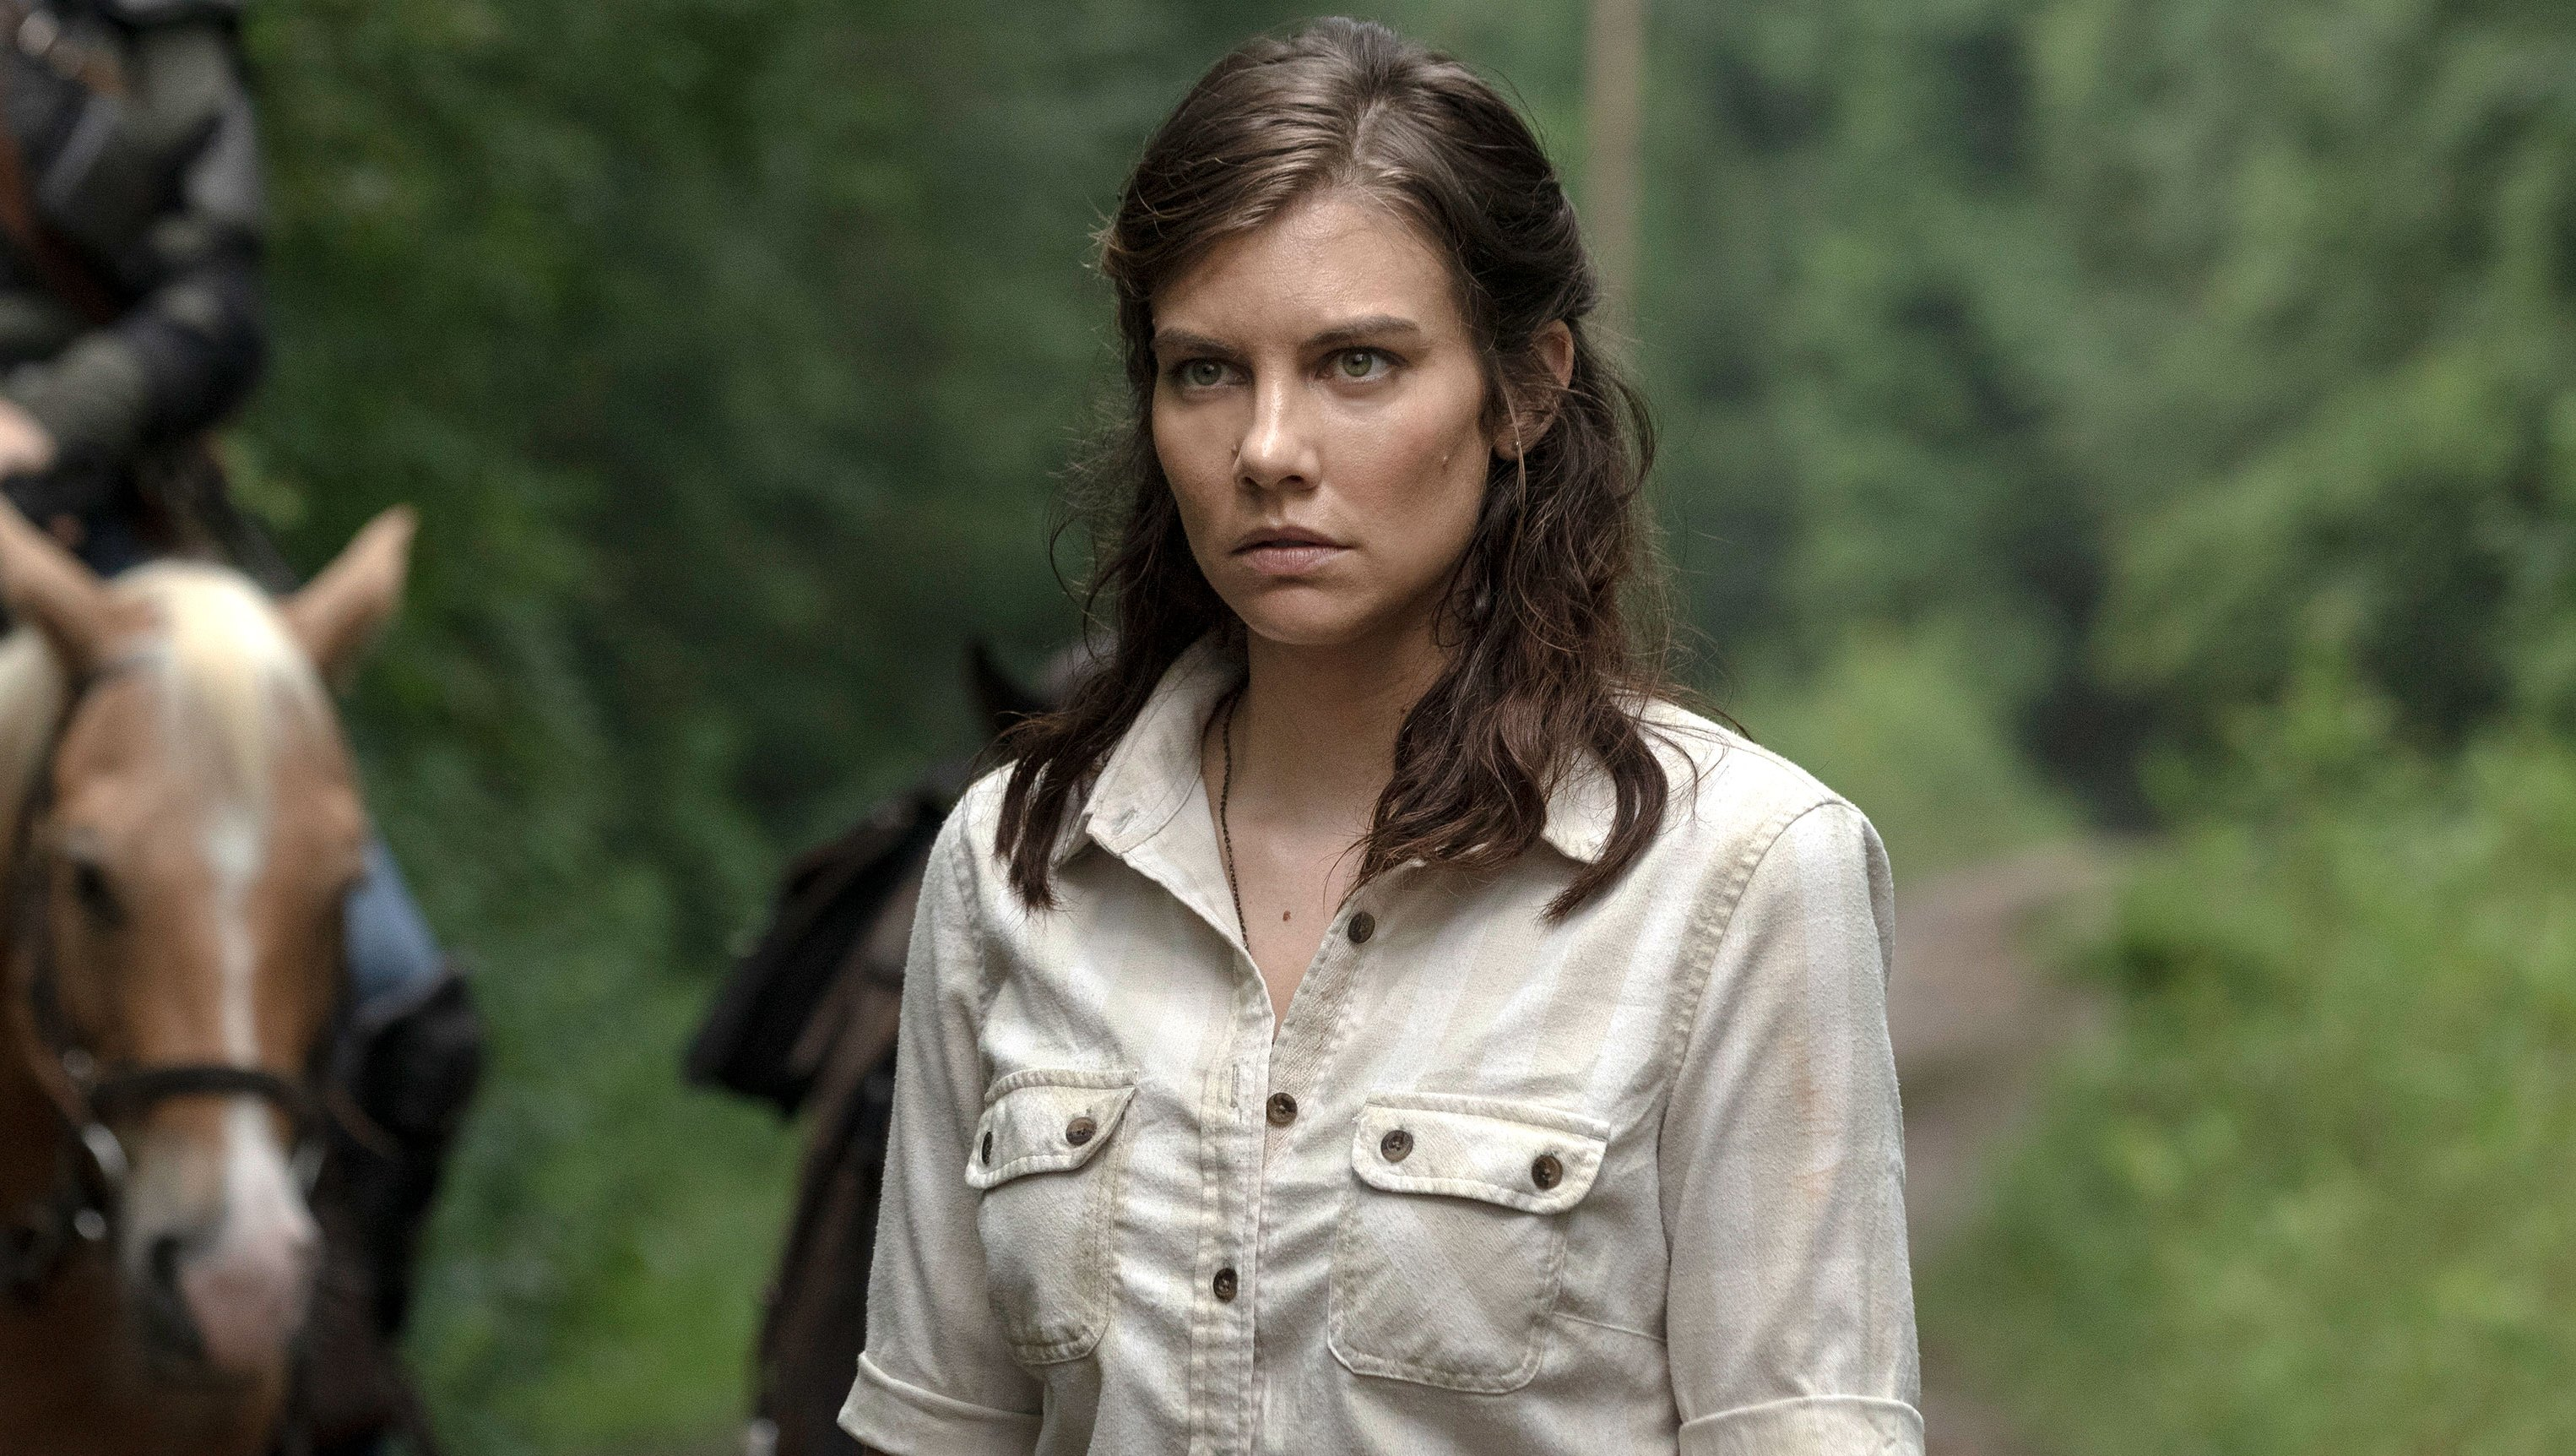 AMC Announces New 'Walking Dead' Spinoff: Women to Lead Third Series of the Franchise